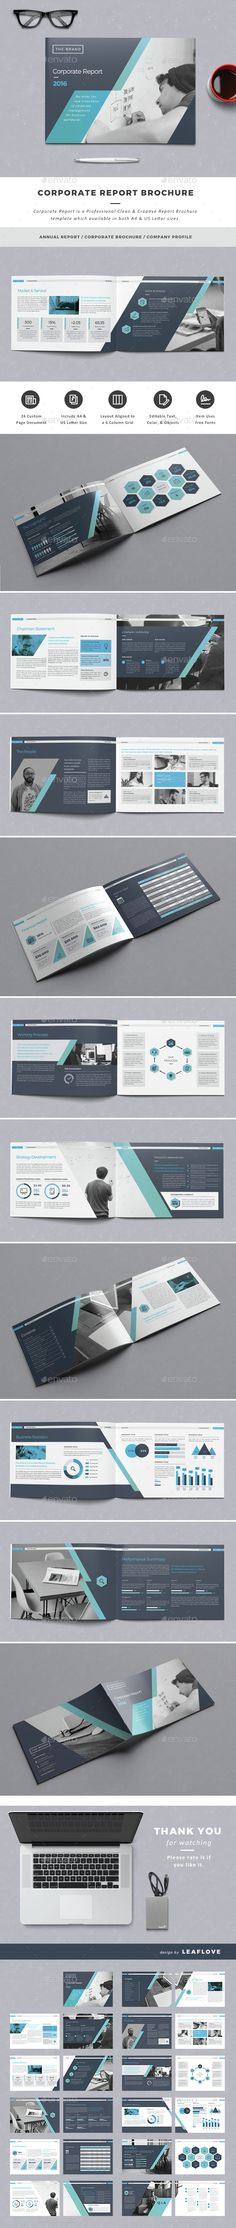 University  College Brochure Template   Pages  Indesign